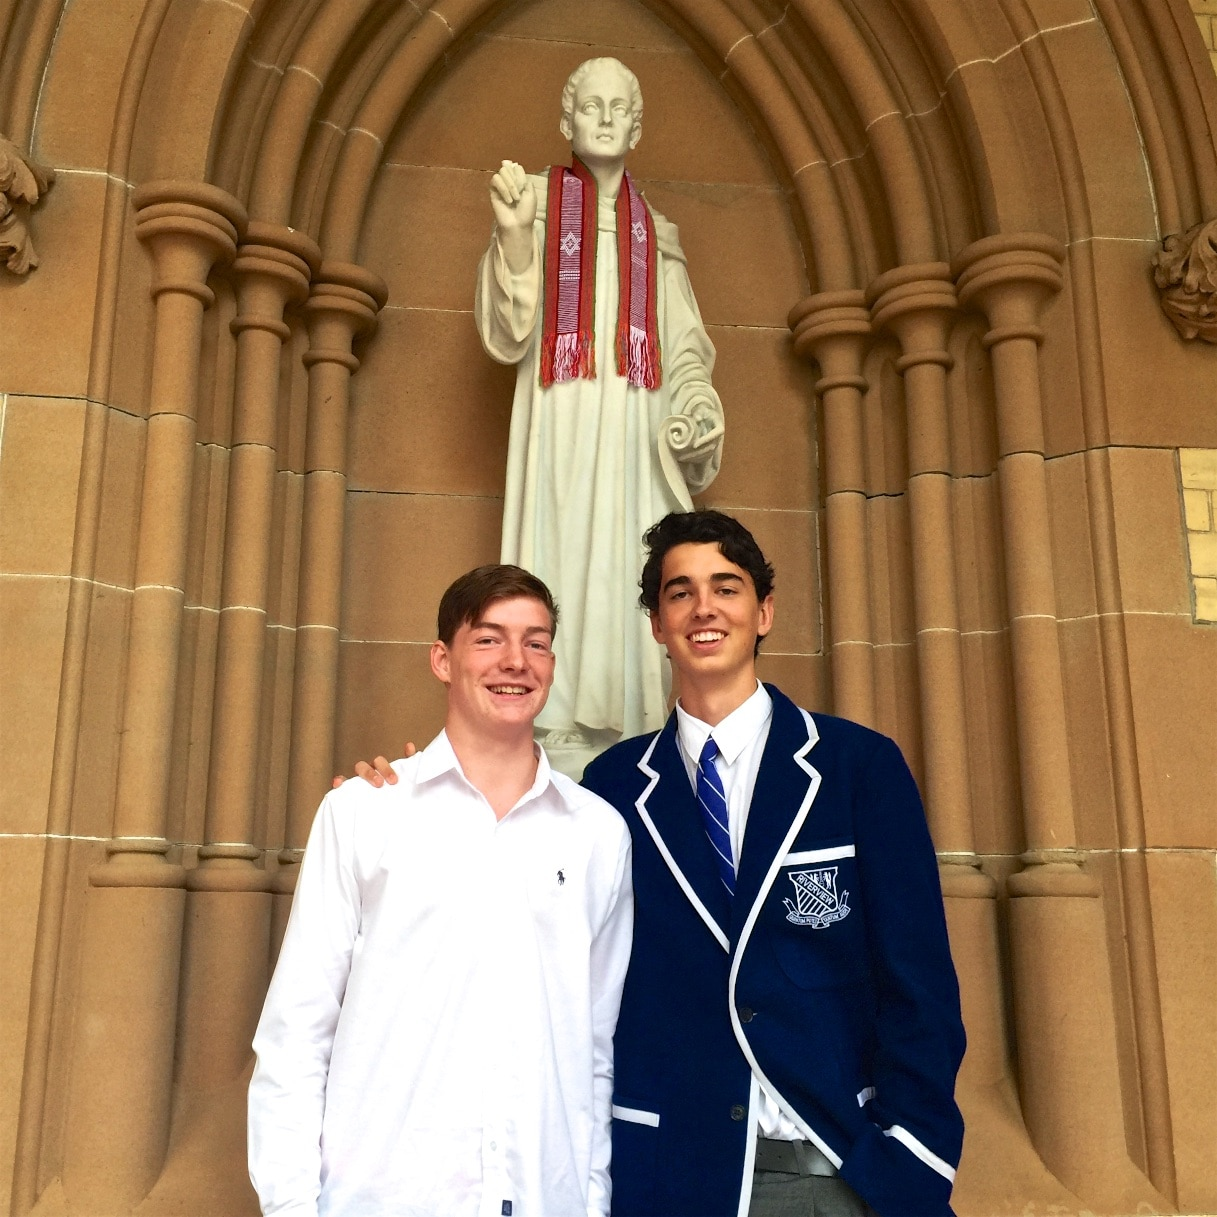 Sam and Hamish from St Ignatius' College Riverview shared their 'immersion' experiences of Railaco Mission with the St Canice Community and mingled with parishioners during morning tea after the Mass